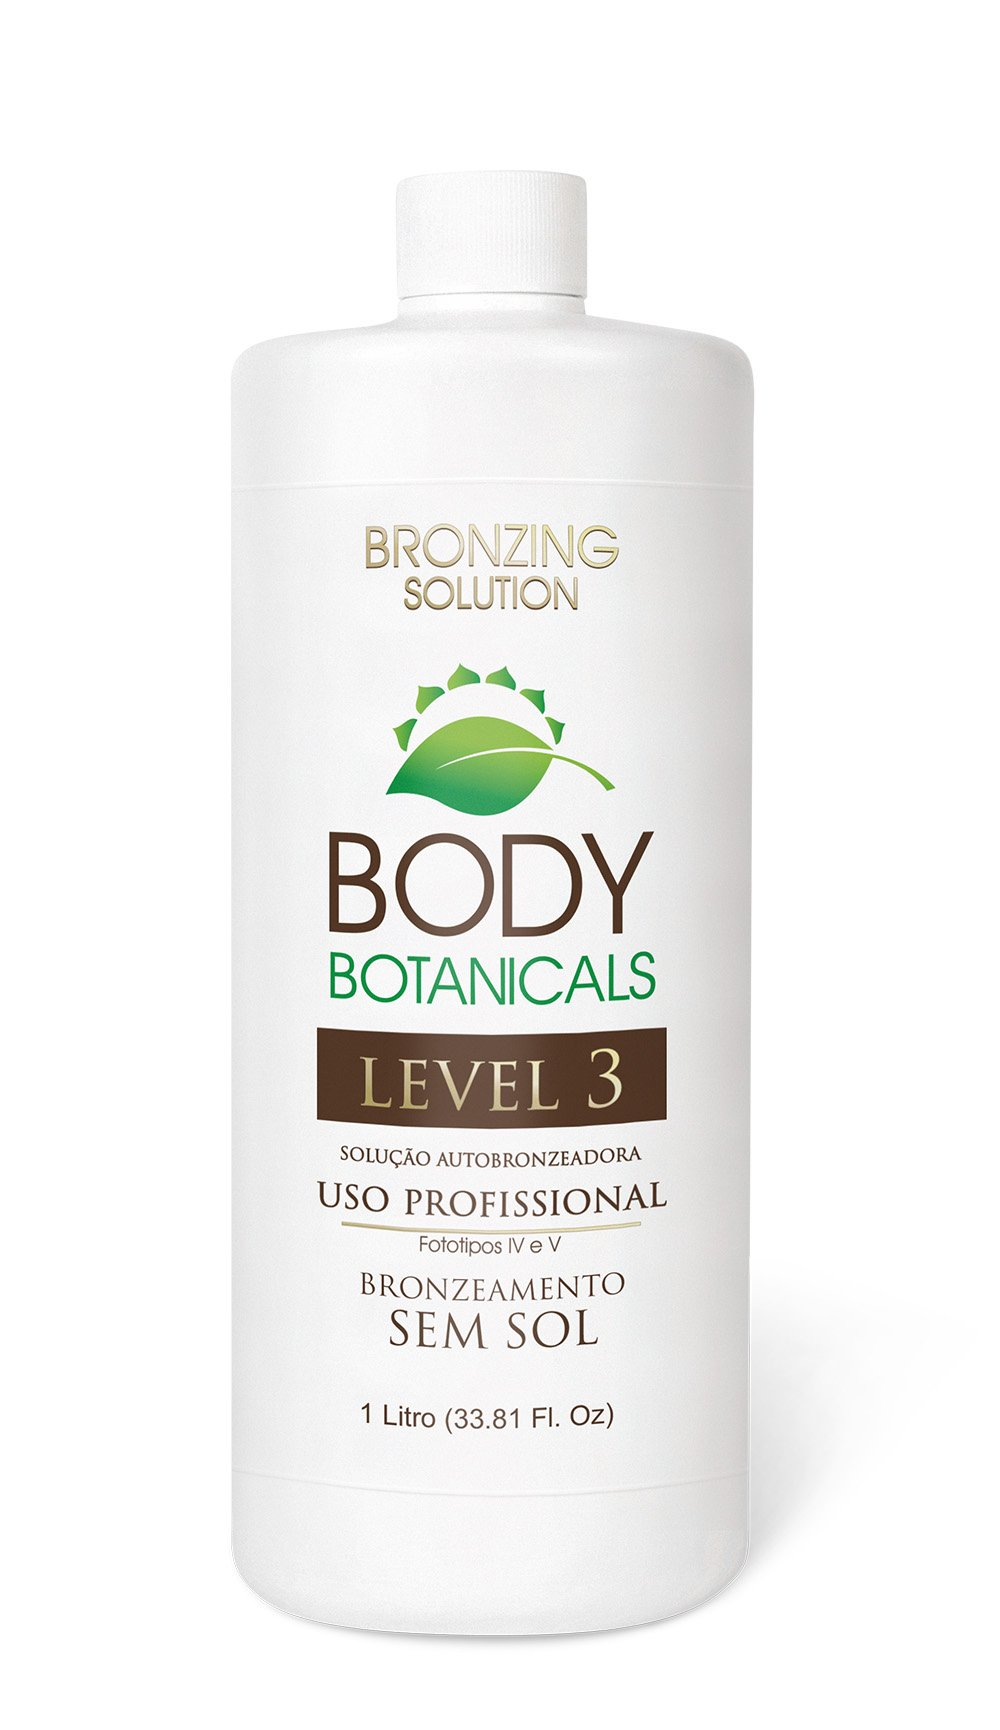 SUNLESS TANNING | Professional Spray Tanning solution by Body Botanicals, Pharmaceutical Grade DHA 12% Spray Tanning formula, Aromatherapy Scent, Natural Bronze Color